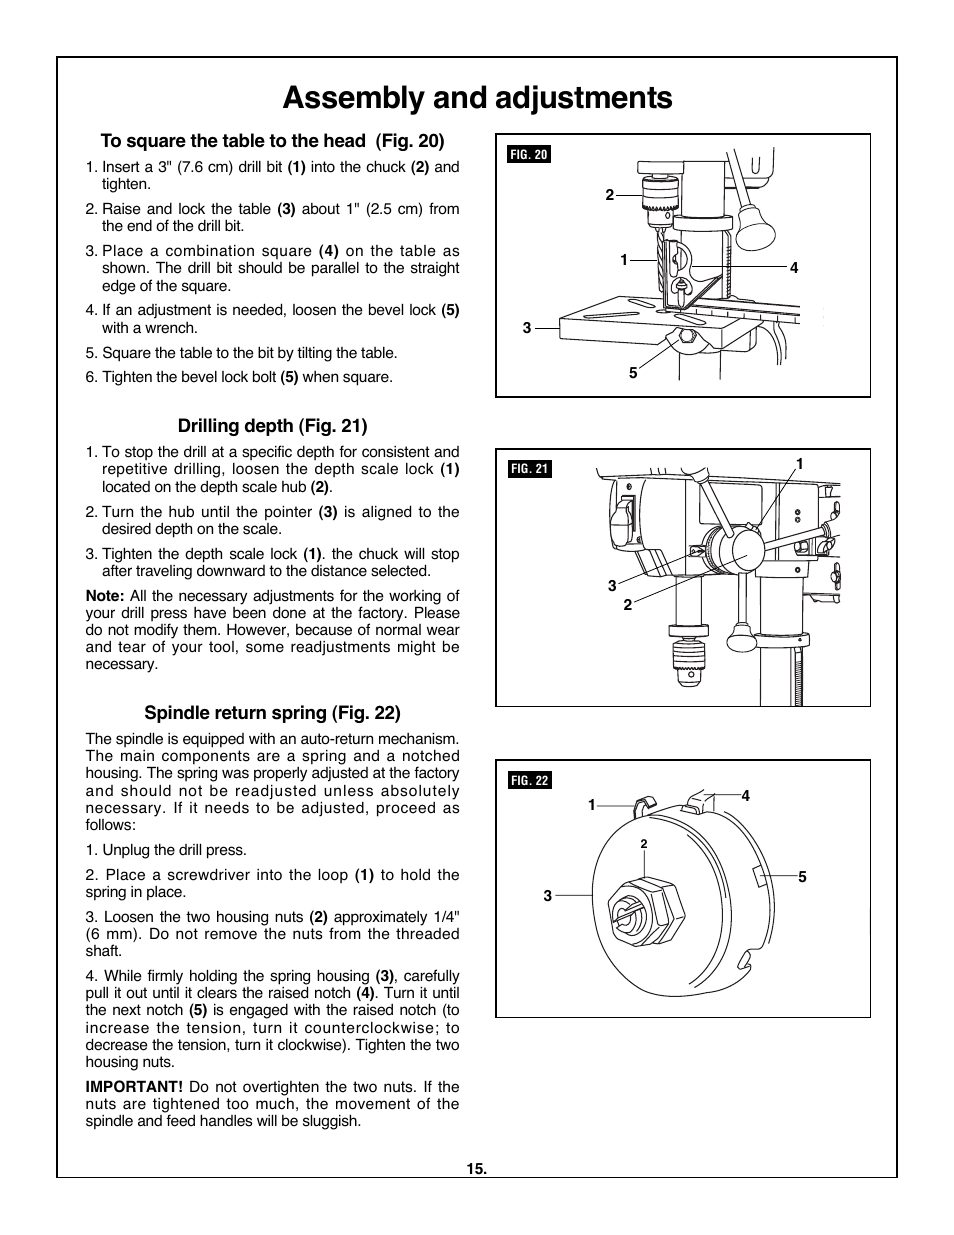 assembly and adjustments skil 3320 01 user manual page 15 60 rh manualsdir com